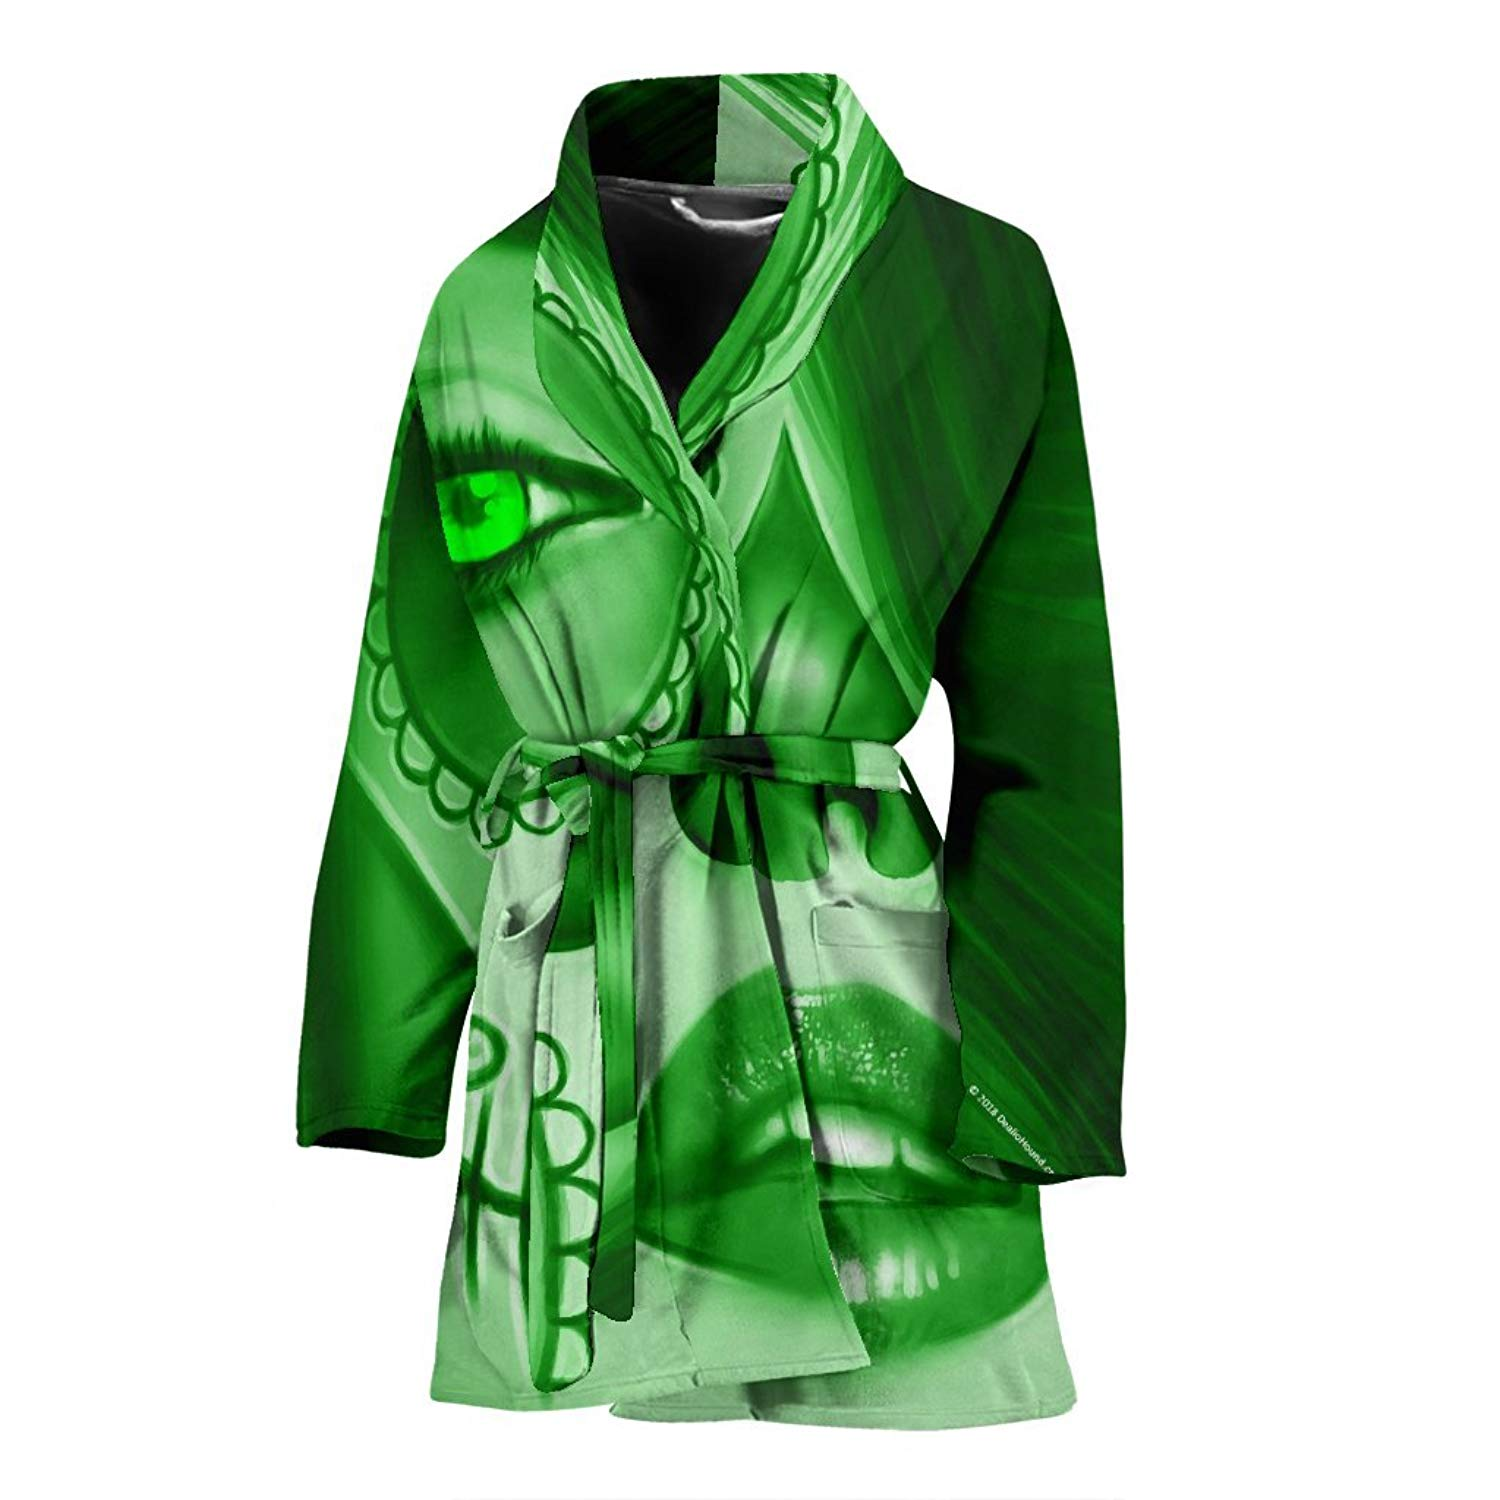 2e7cefcb50 Get Quotations · DealioHound Calavera Design  3 Bathrobe for Women and Teen  Girls (Green Emerald)